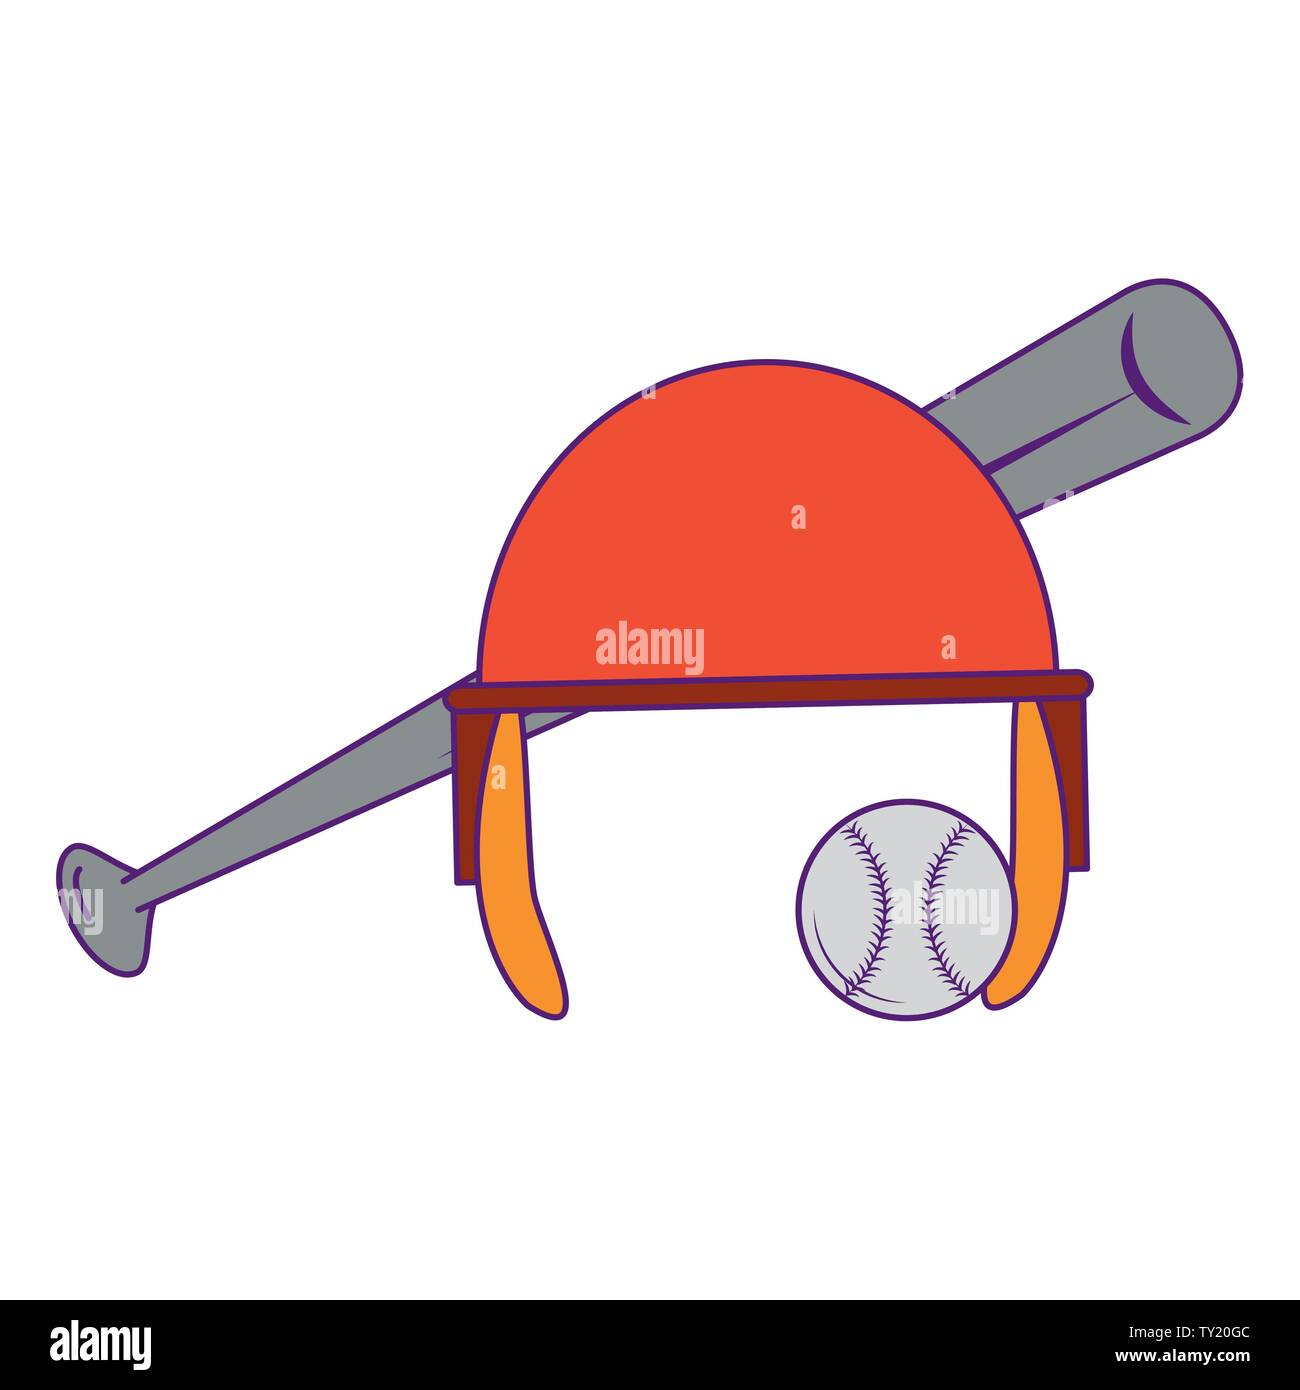 Baseball equiment Elemente Kugel, Aluminium bat und Teig Helm icon cartoon Vector Illustration graphic design Stockbild